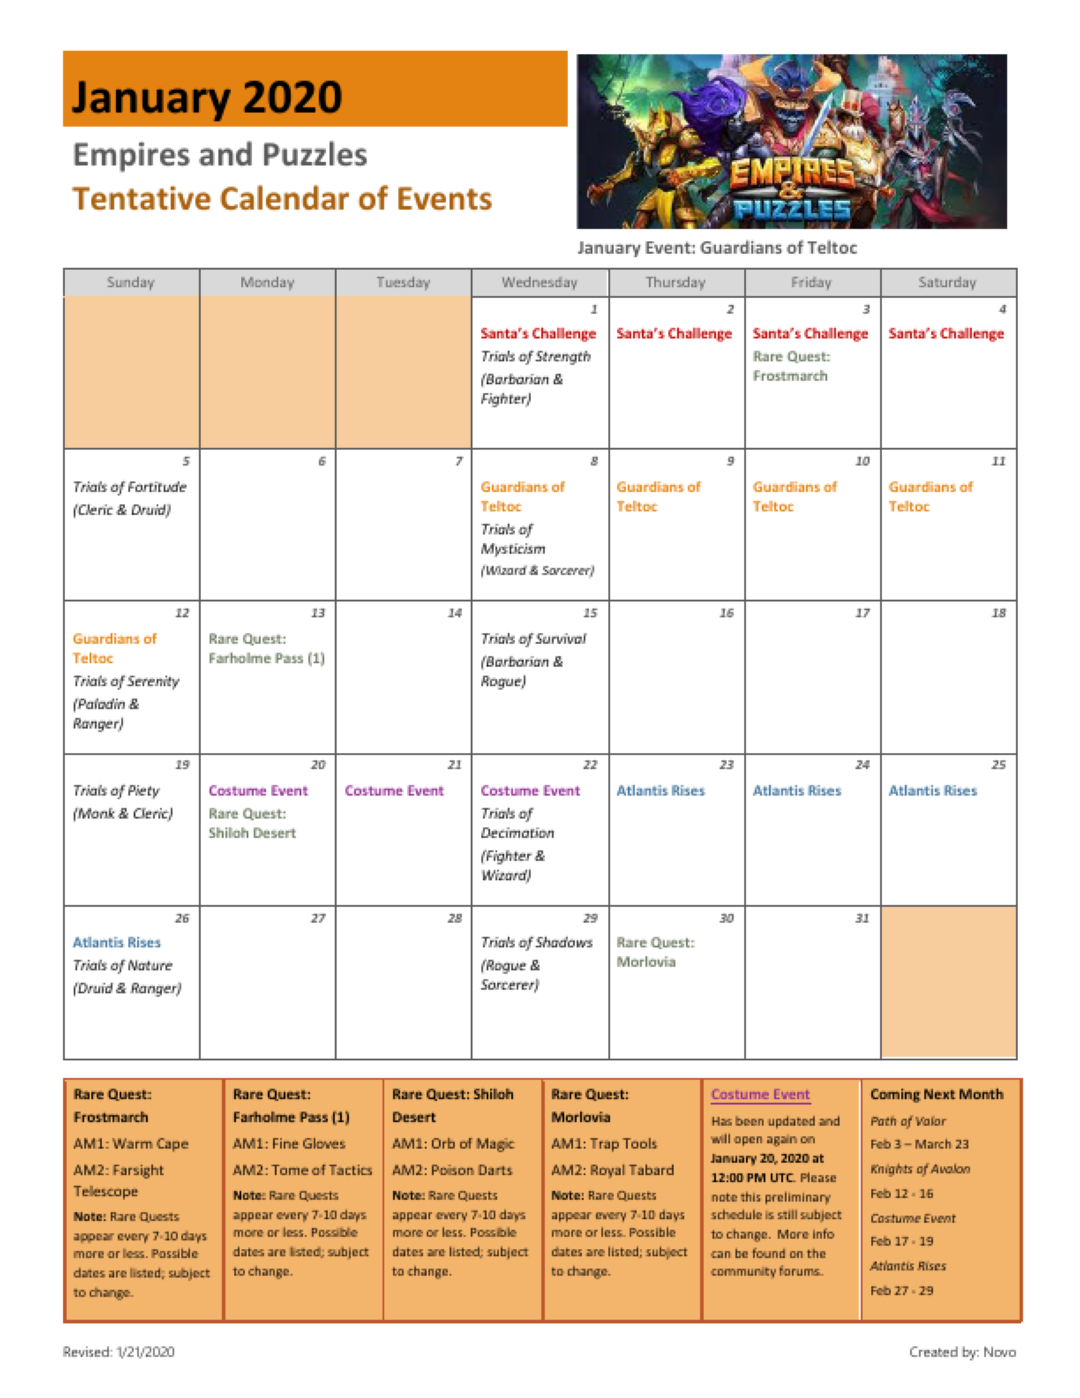 Overview For Zero80 with regard to Empire And Puzzles Event Calendar